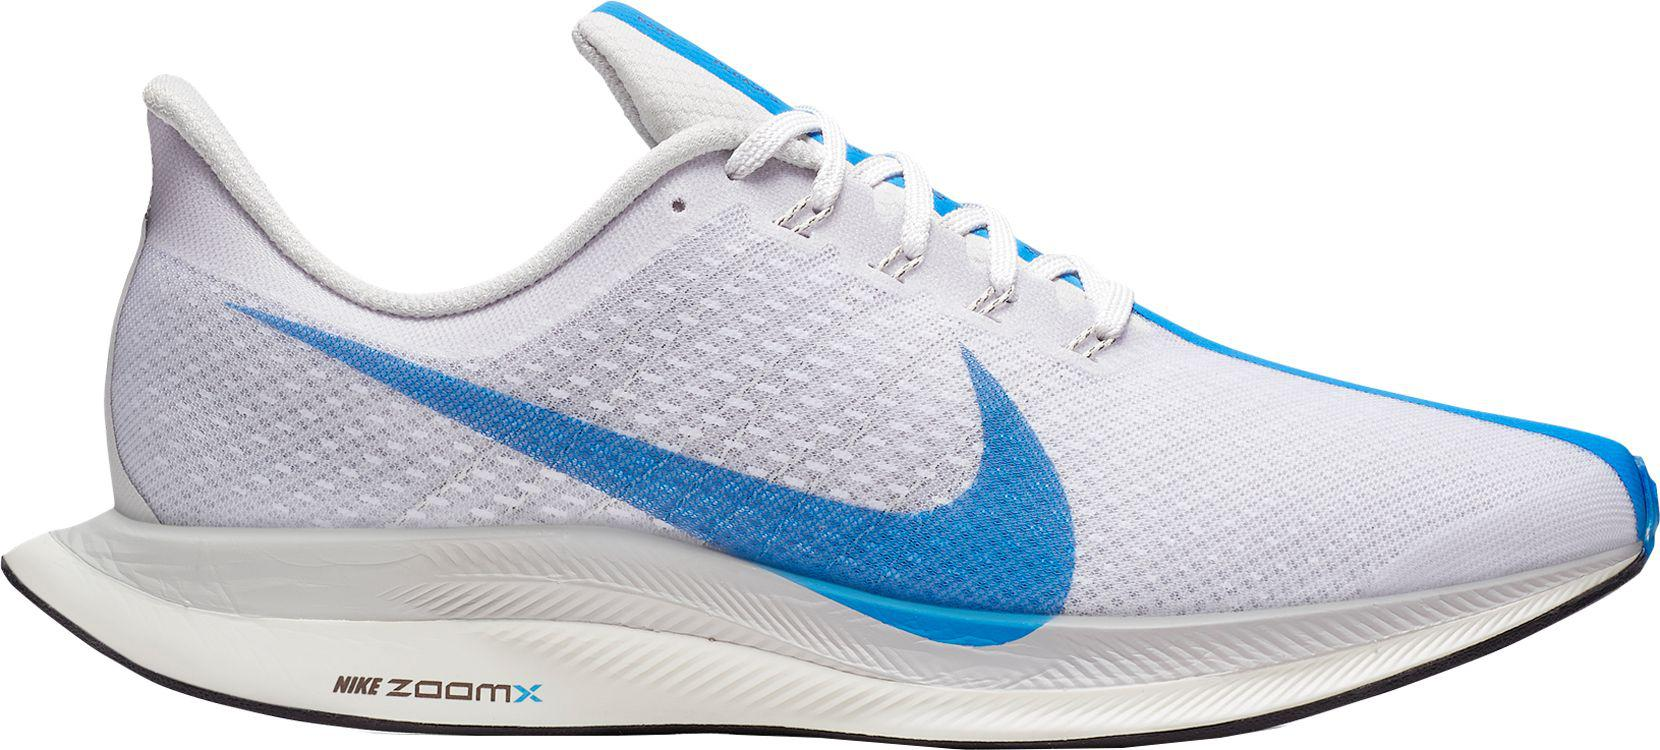 adb210df18147 Lyst - Nike Air Zoom Pegasus 35 Turbo Running Shoes in Blue for Men ...